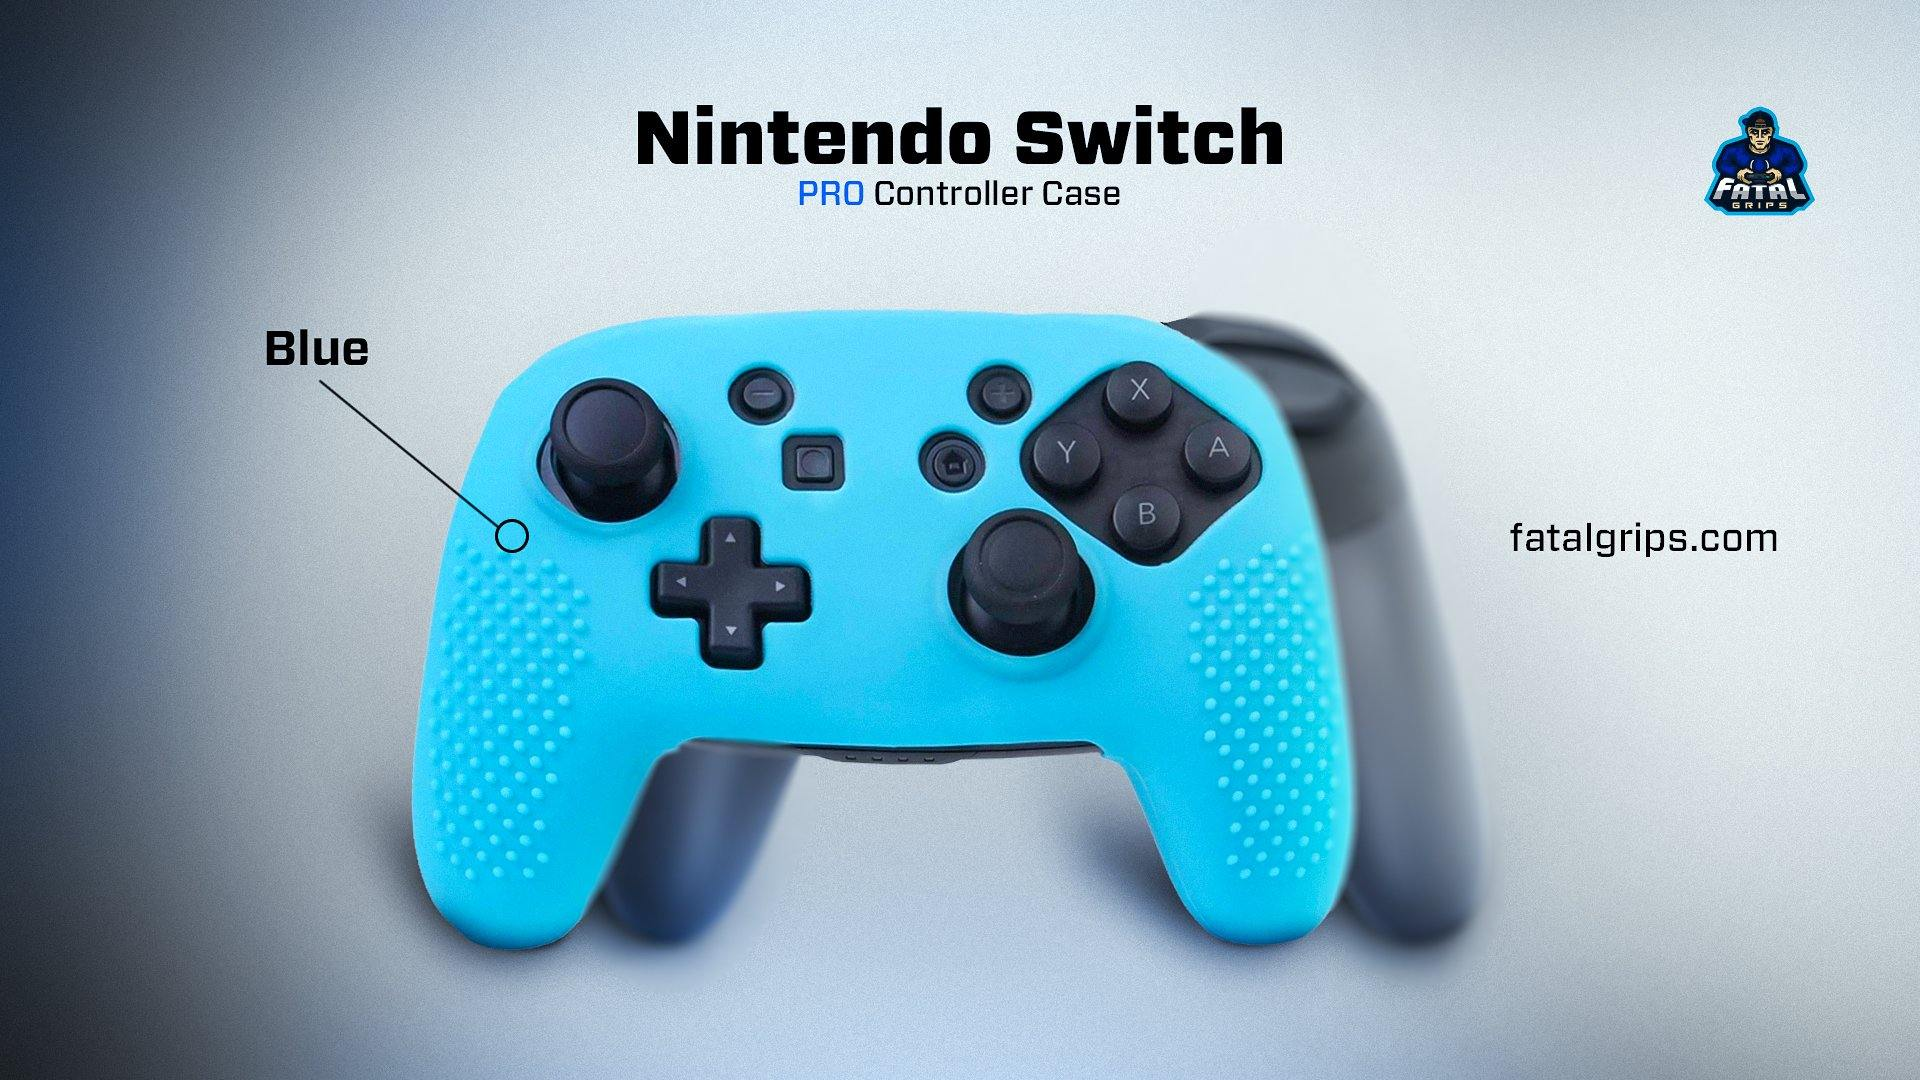 Nintendo Switch Pro Controller Case (Blue) - Fatal Grips